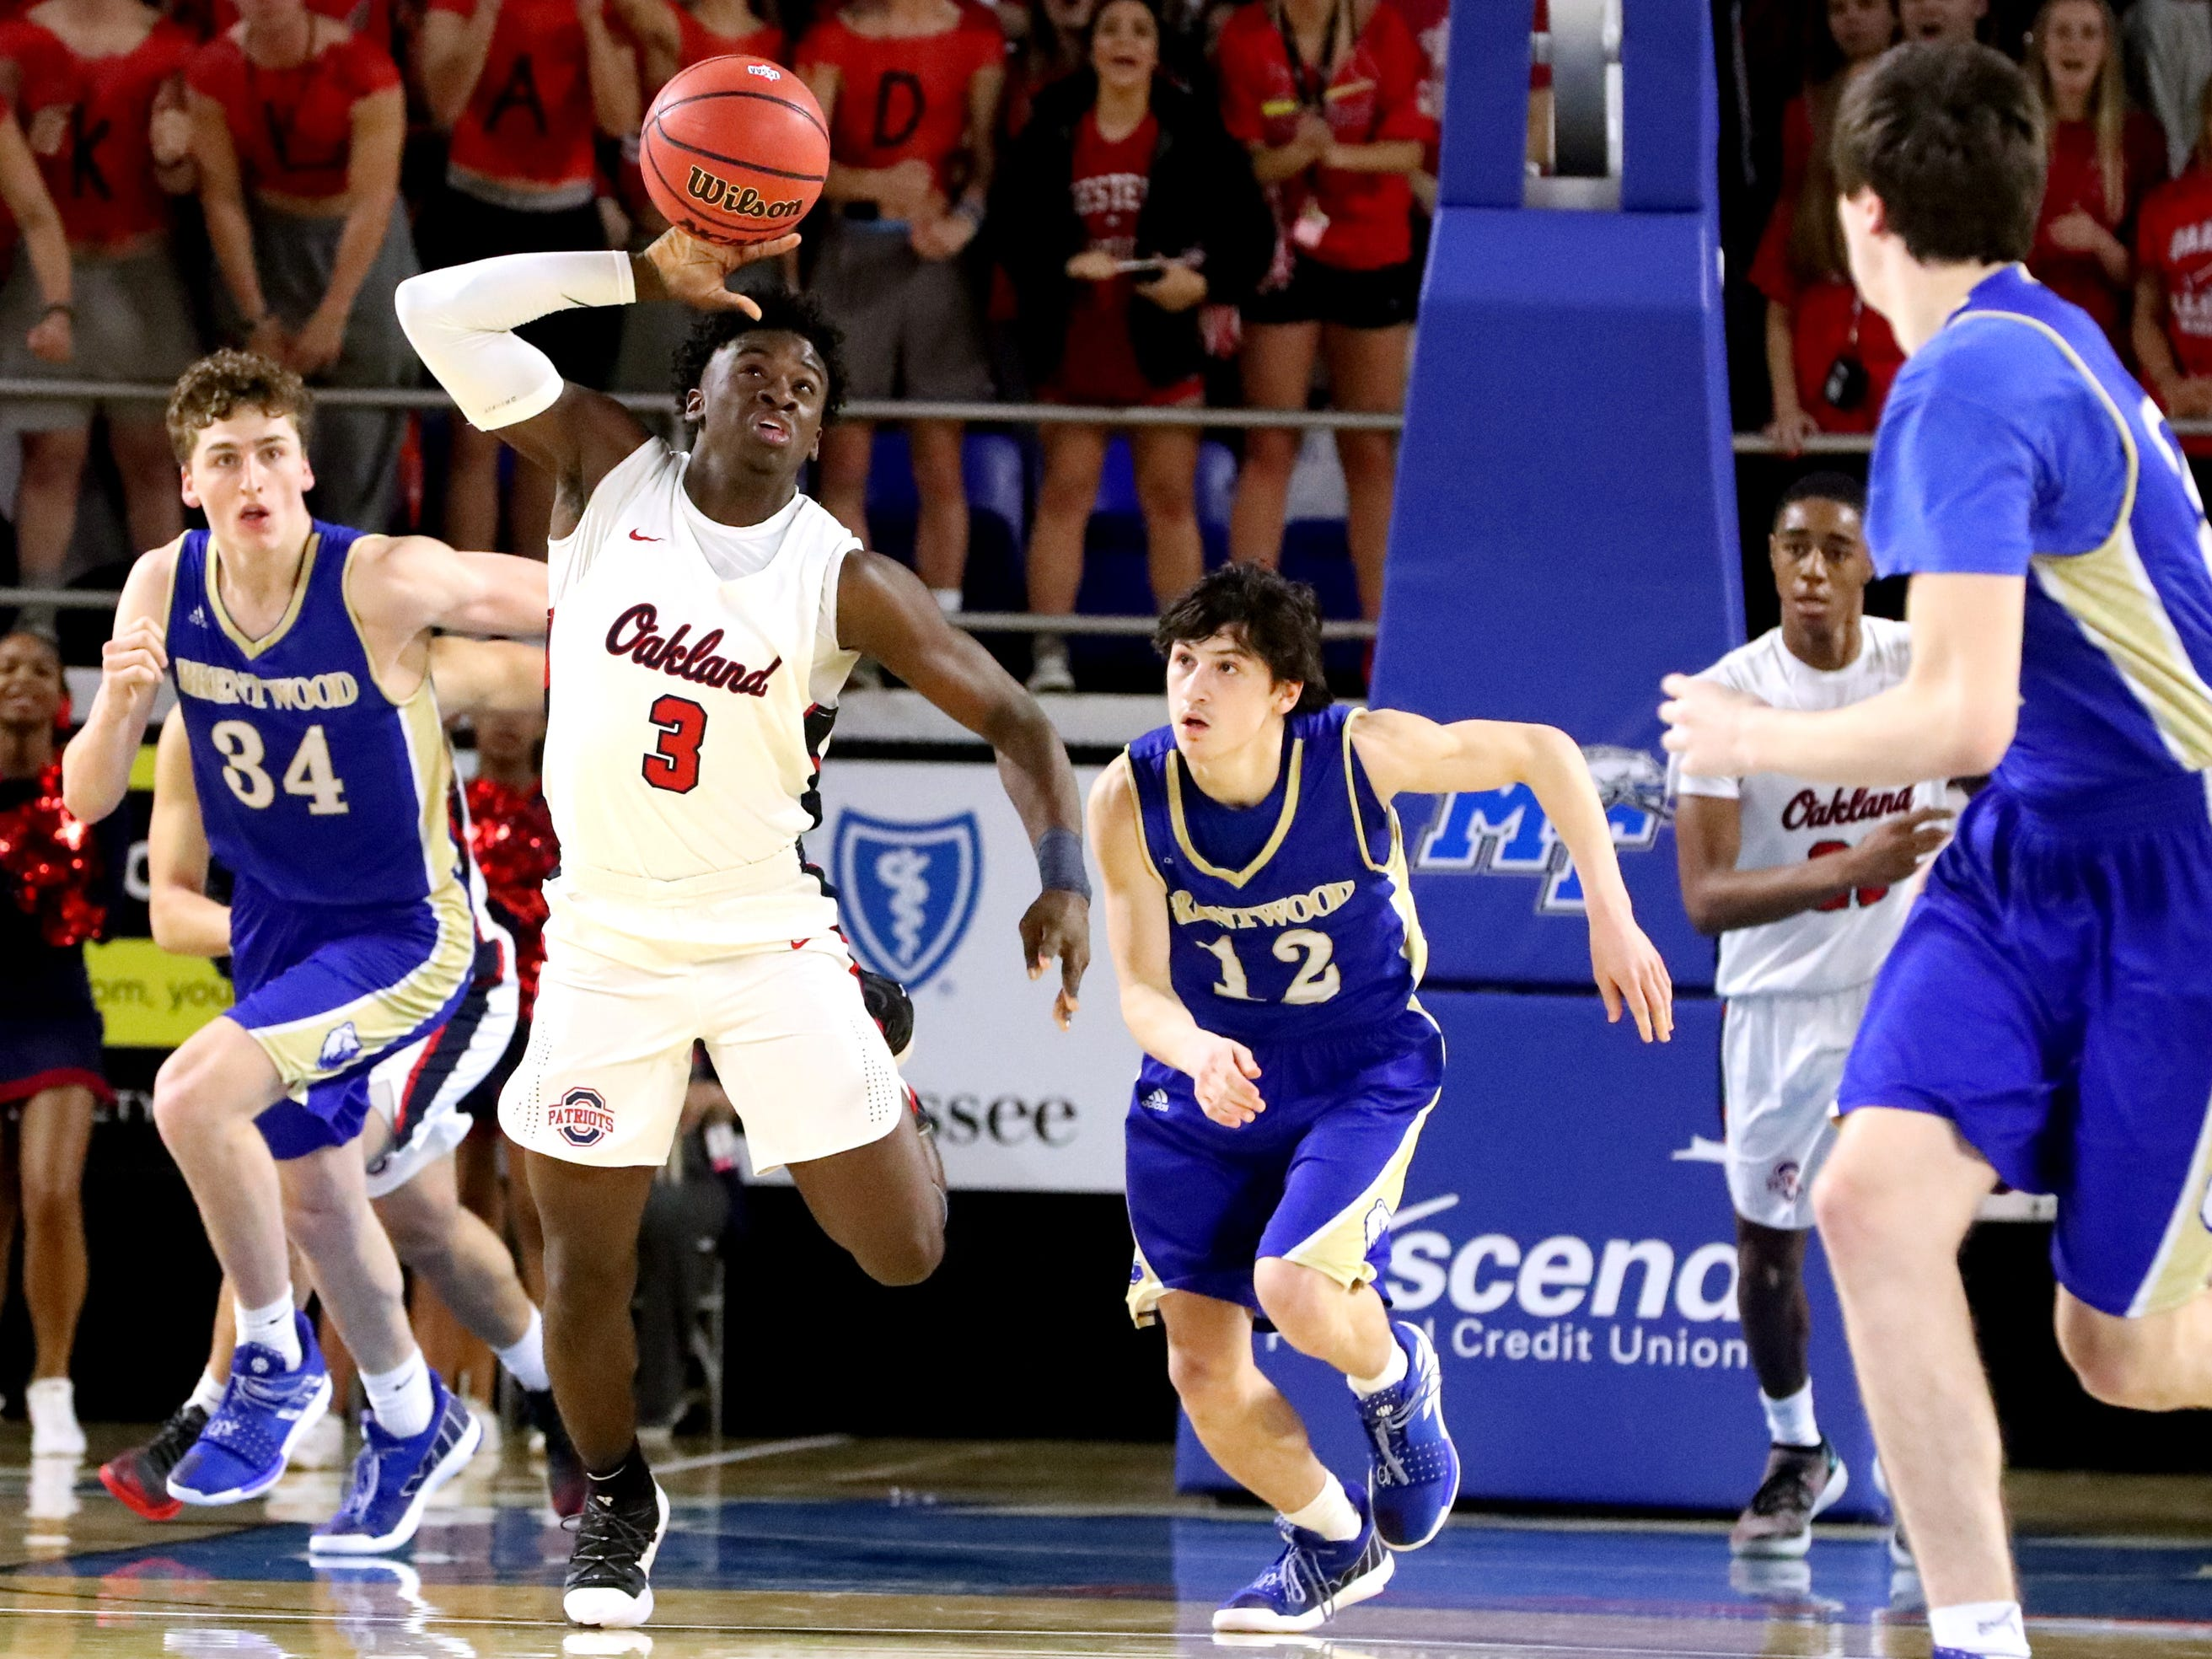 Oakland's Dearre McDonald (3) grabs a loose ball and  brings the ball up court during the quarterfinal round of the TSSAA Class AAA Boys State Tournament, on Thursday, March 14, 2019, at Murphy Center in Murfreesboro, Tenn.